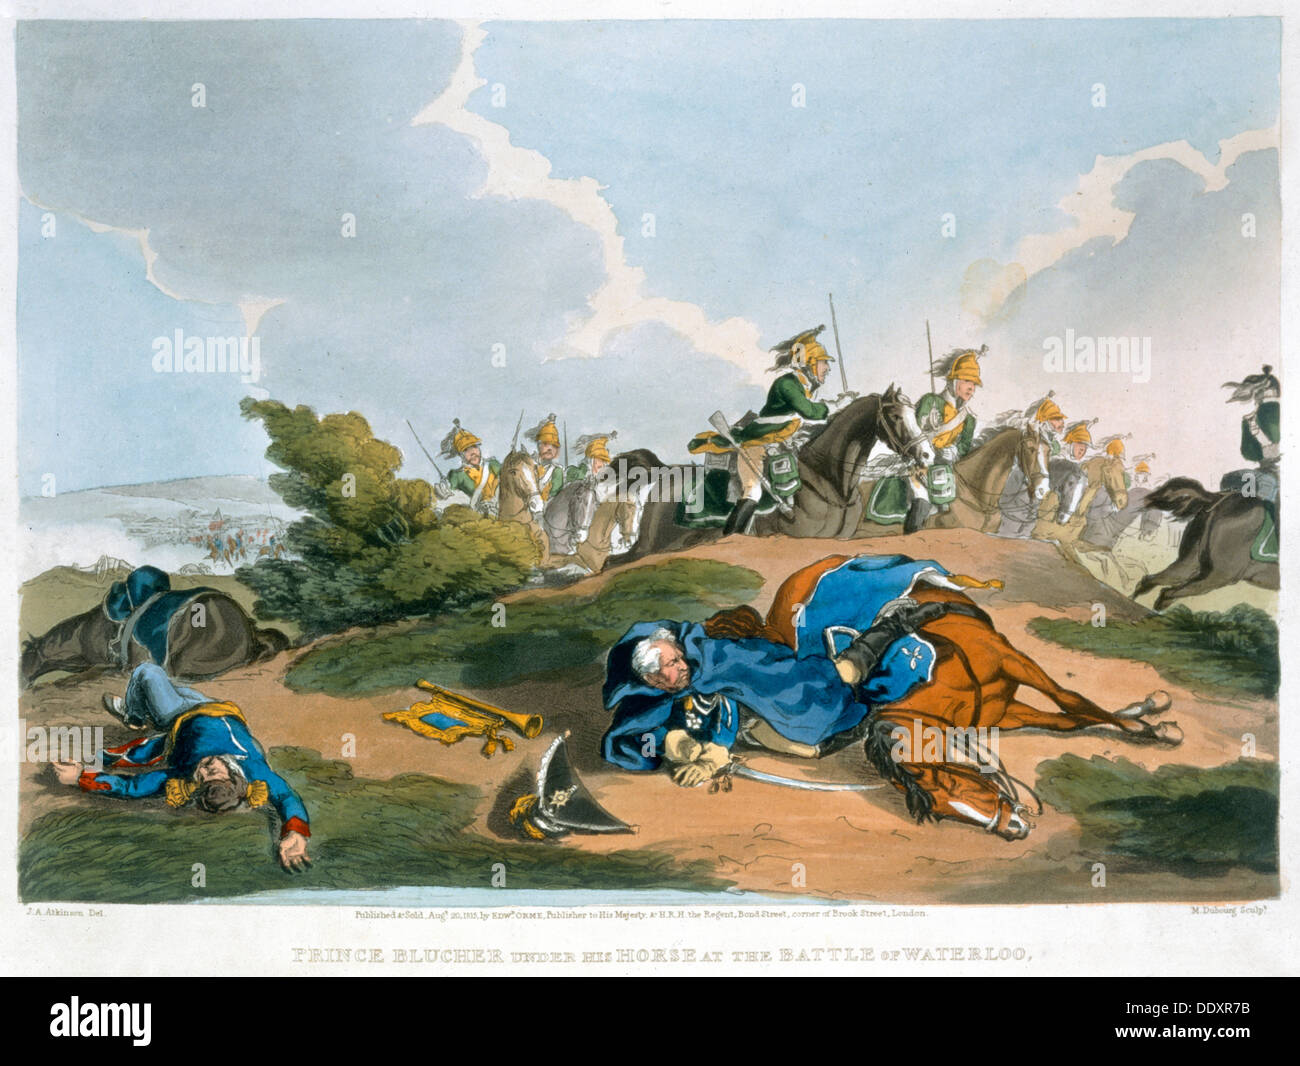 'Prince Blucher under his Horse at the Battle of Waterloo', 1815. Artist: Matthew Dubourg - Stock Image